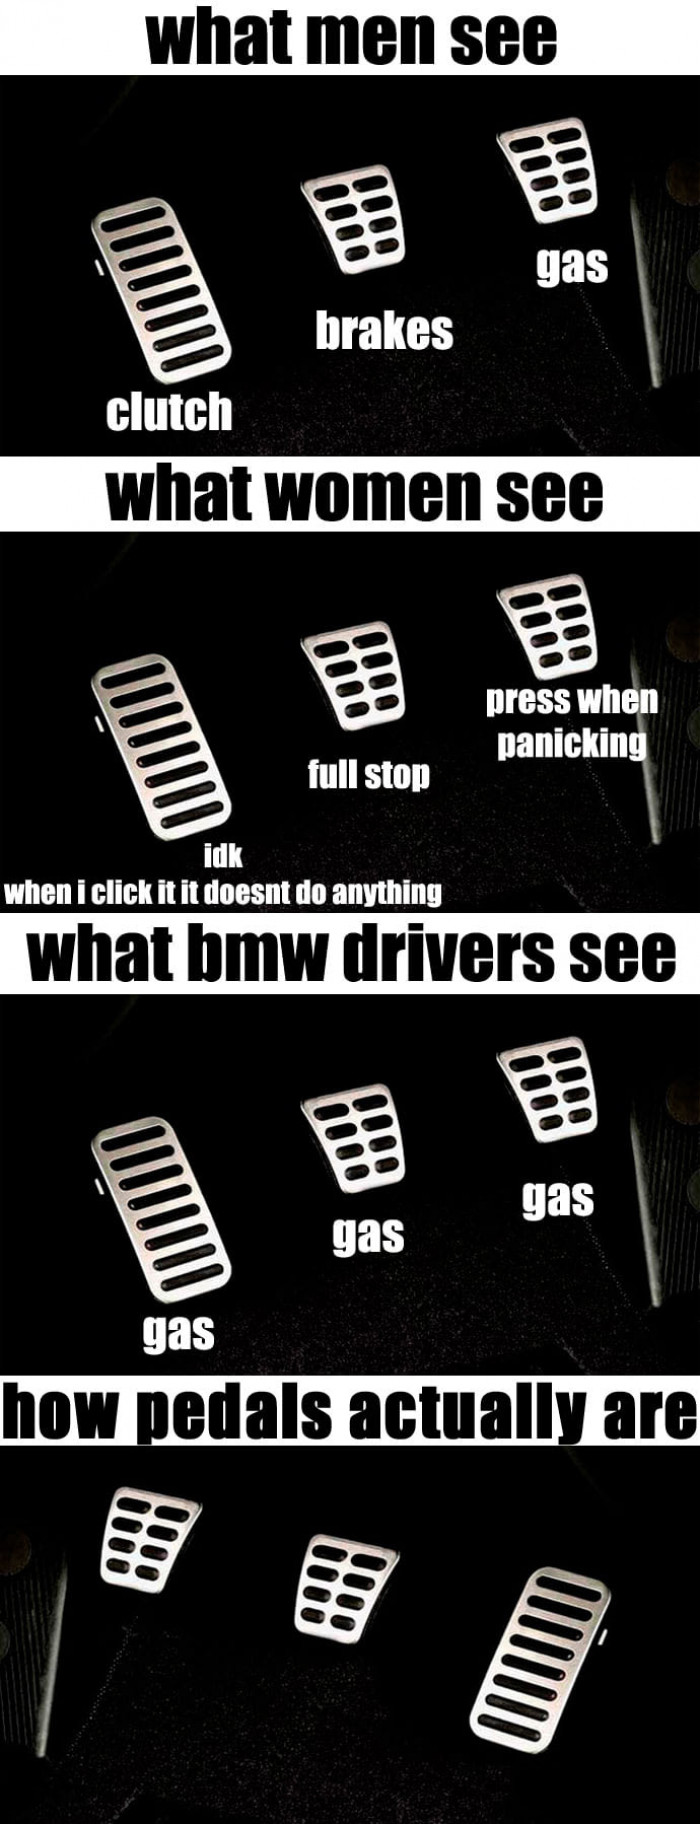 Do You Even Drive, 9gagger?